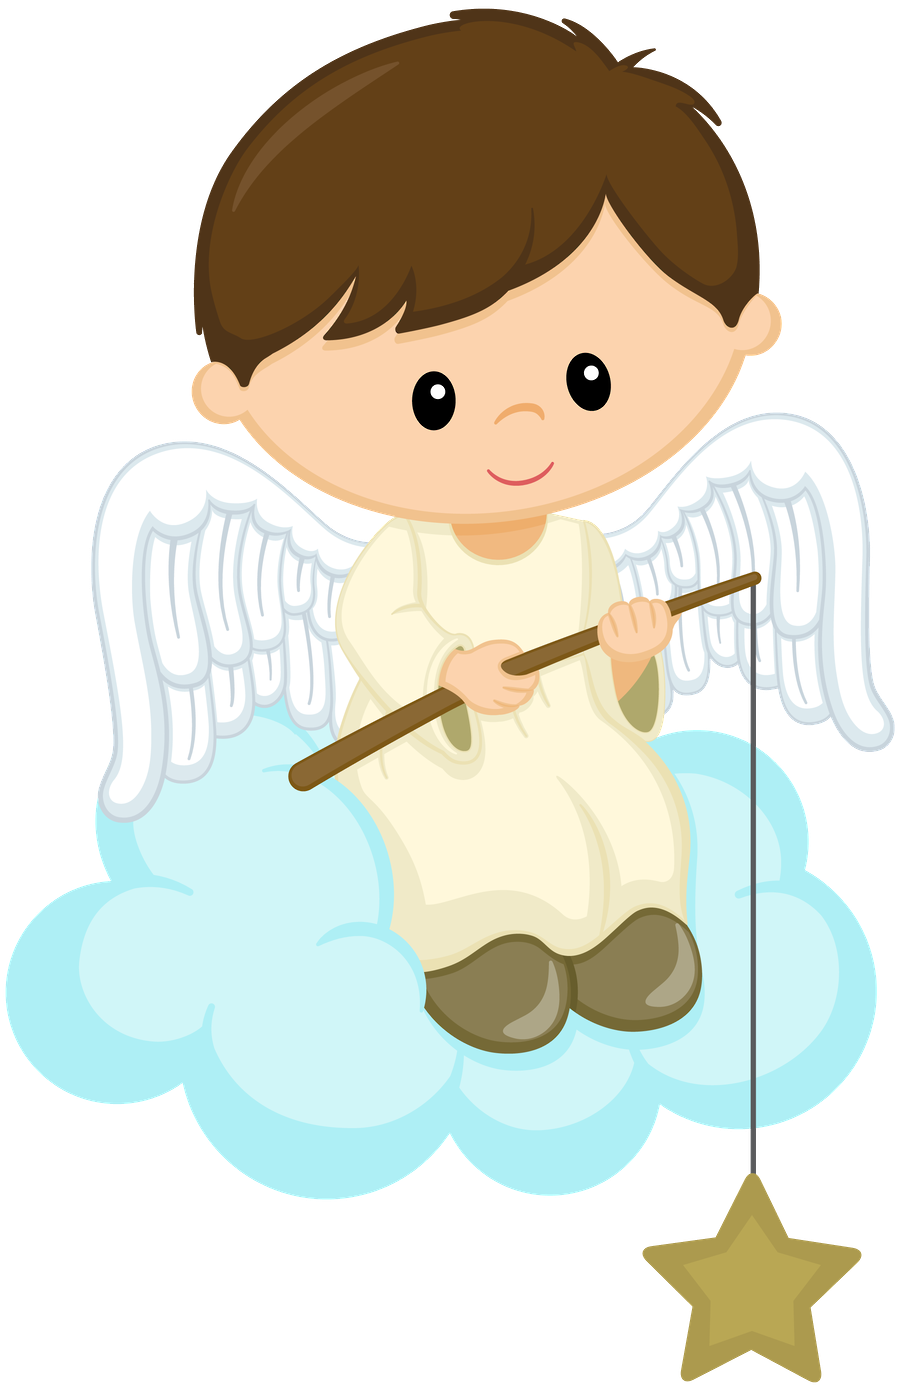 Pin by jeny chique. Communion clipart child